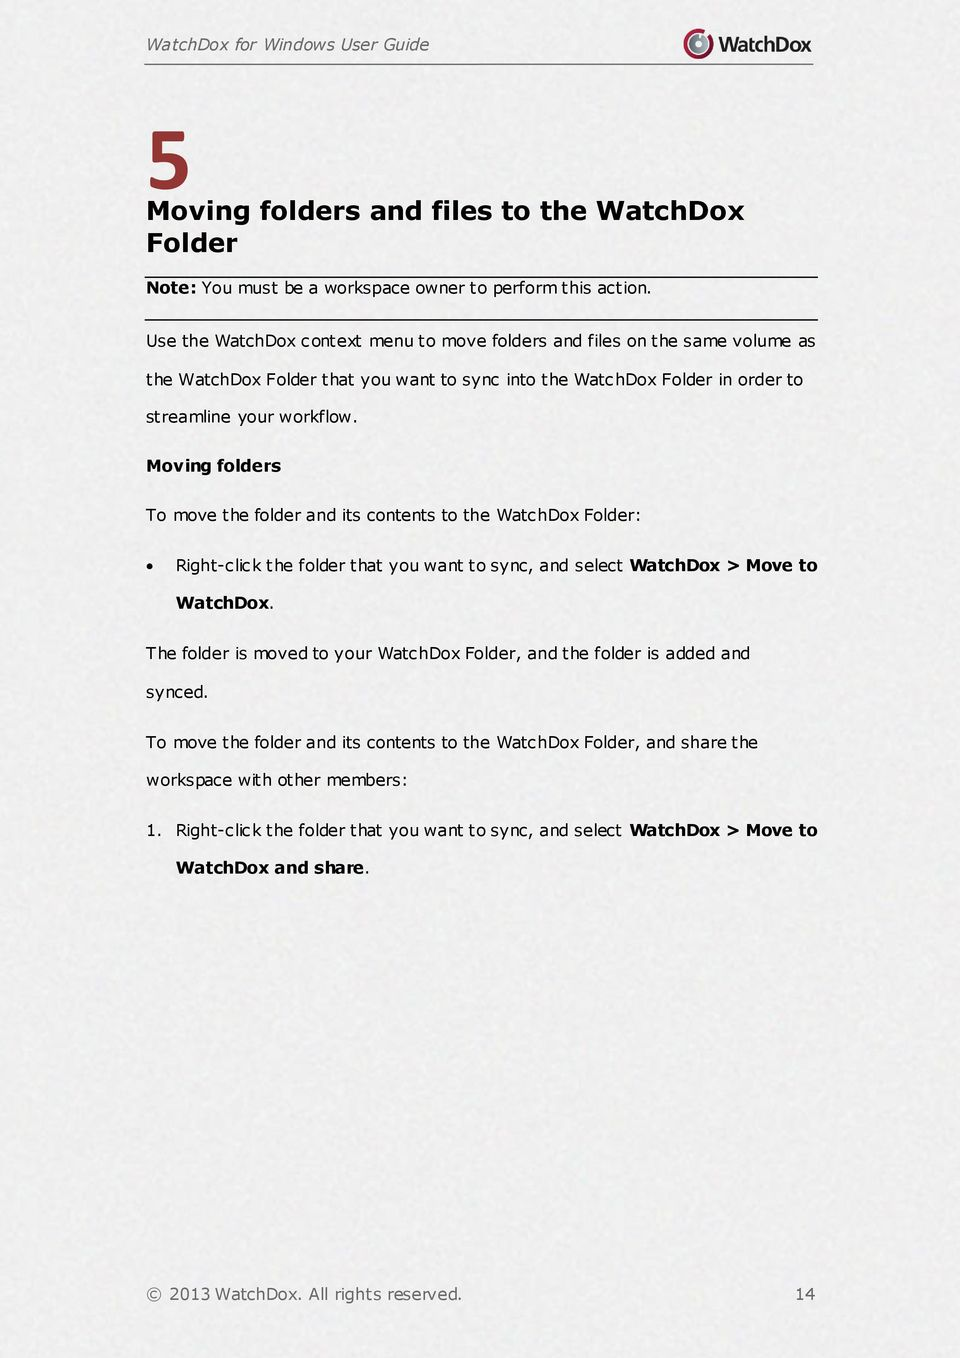 Moving folders To move the folder and its contents to the WatchDox Folder: Right-click the folder that you want to sync, and select WatchDox > Move to WatchDox.